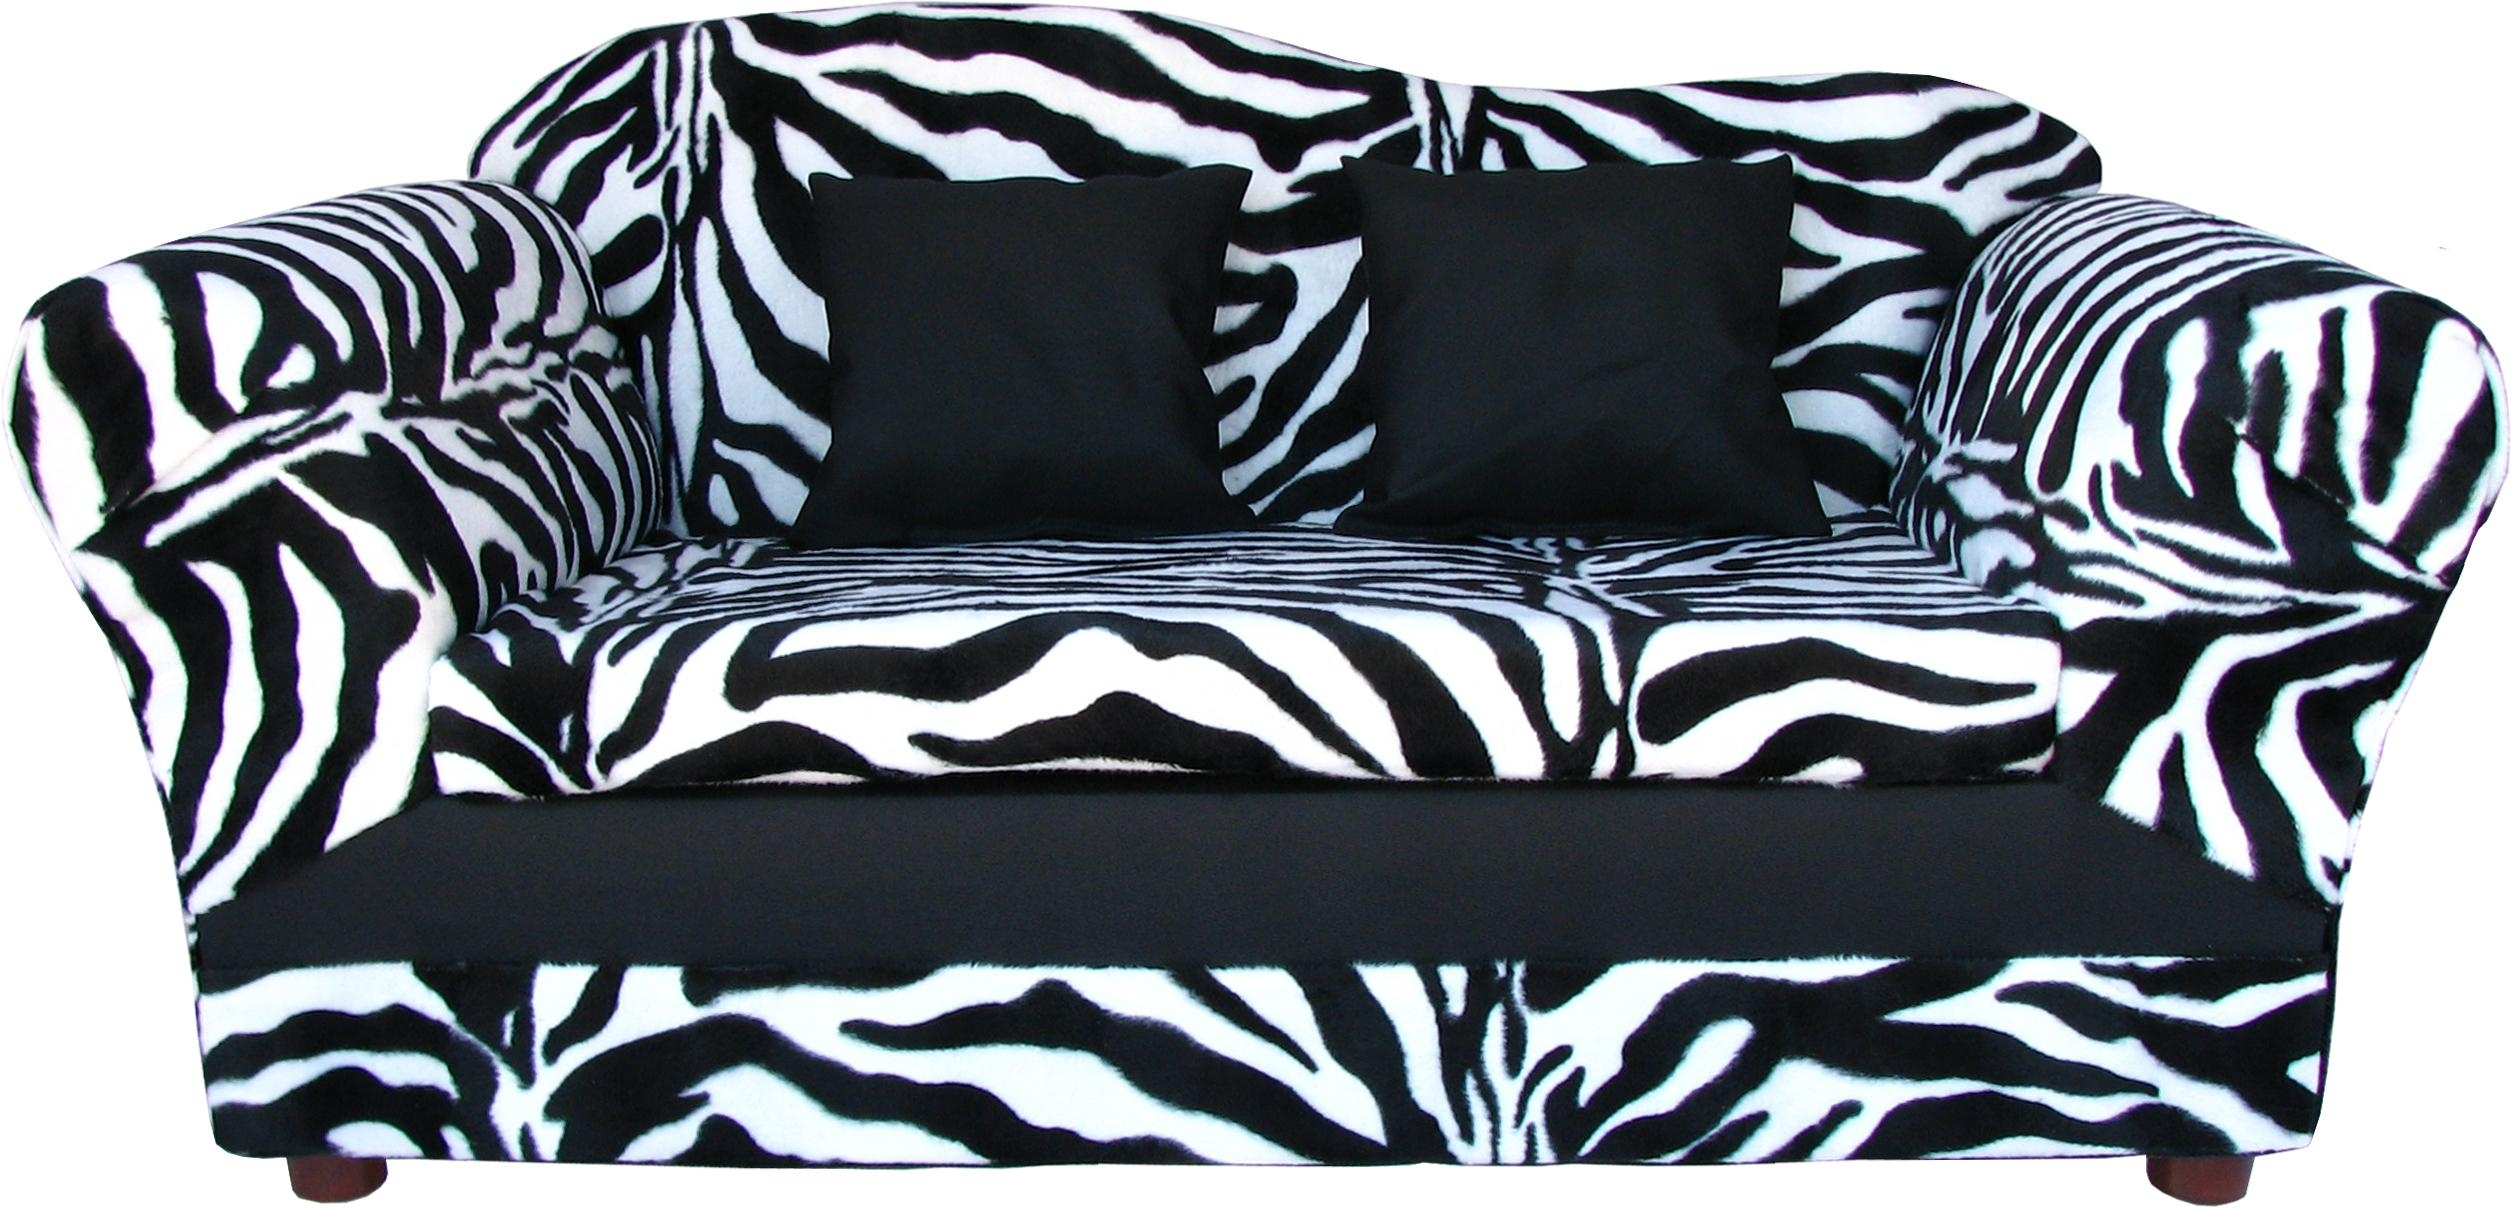 cheap glider chair small chaise lounge chairs for bedroom uk 20 top kids sofa and ottoman set zebra | ideas